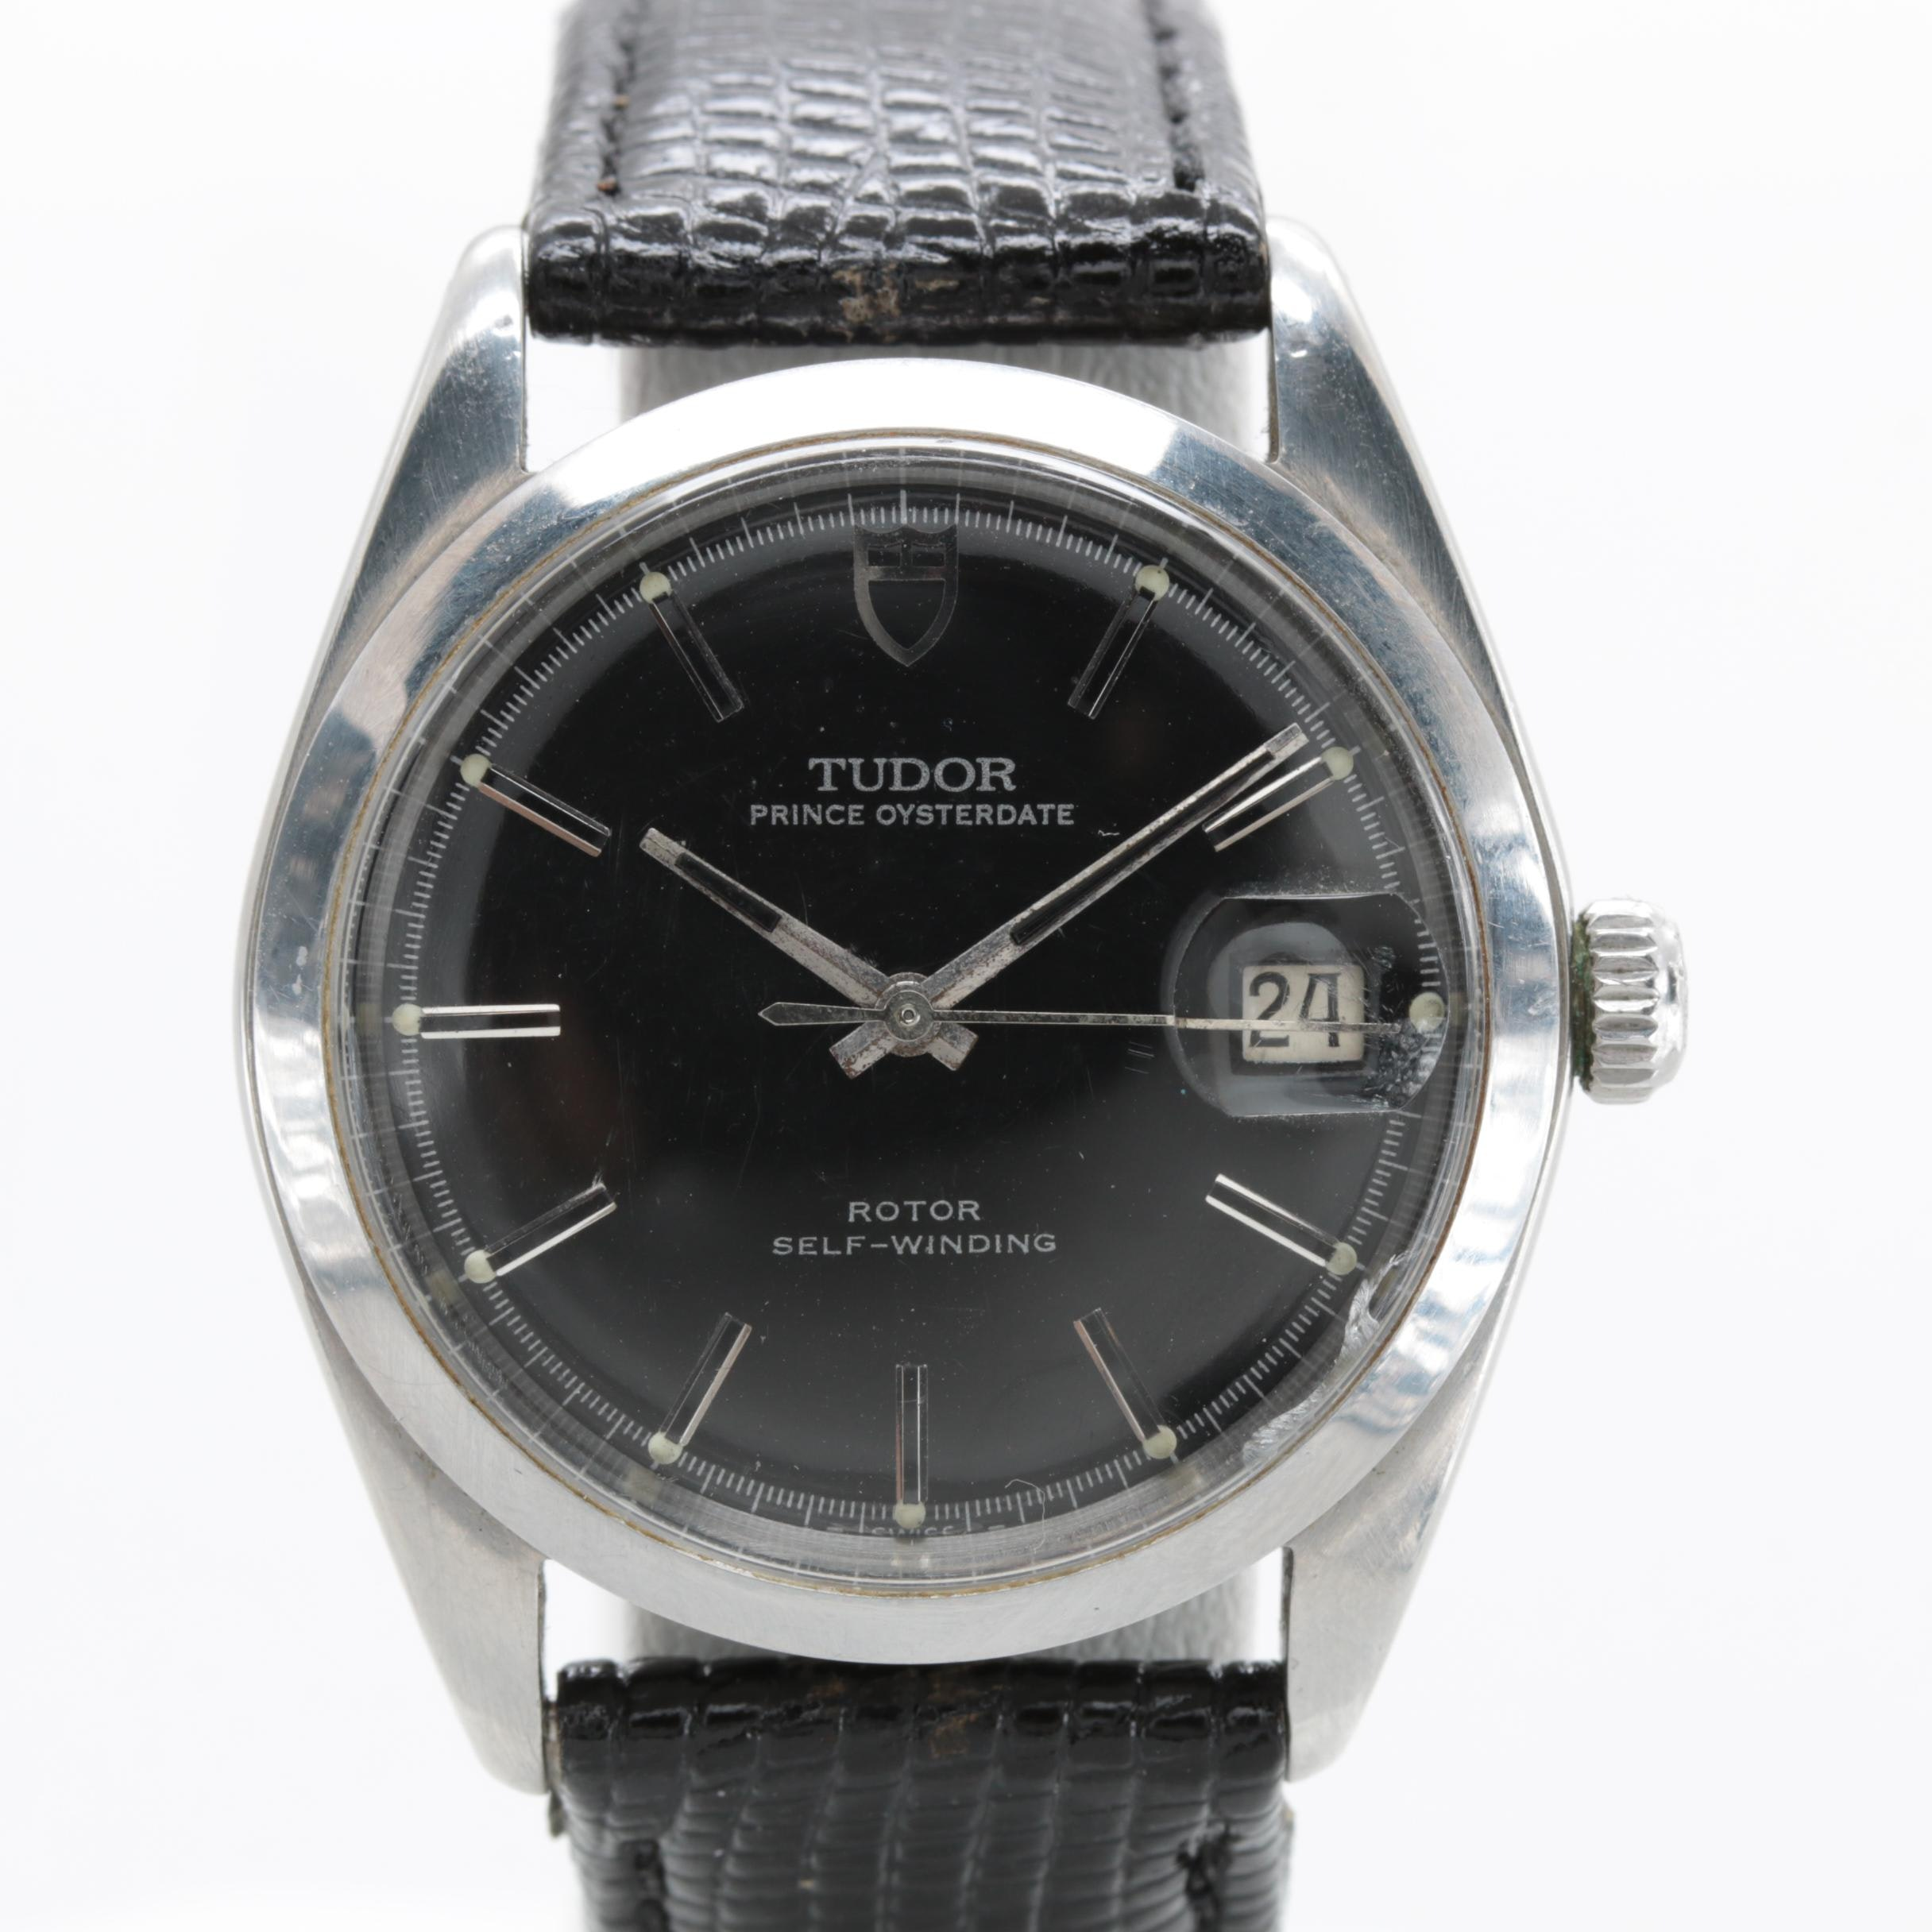 Vintage Tudor Prince Oysterdate Stainless Steel Automatic Wristwatch